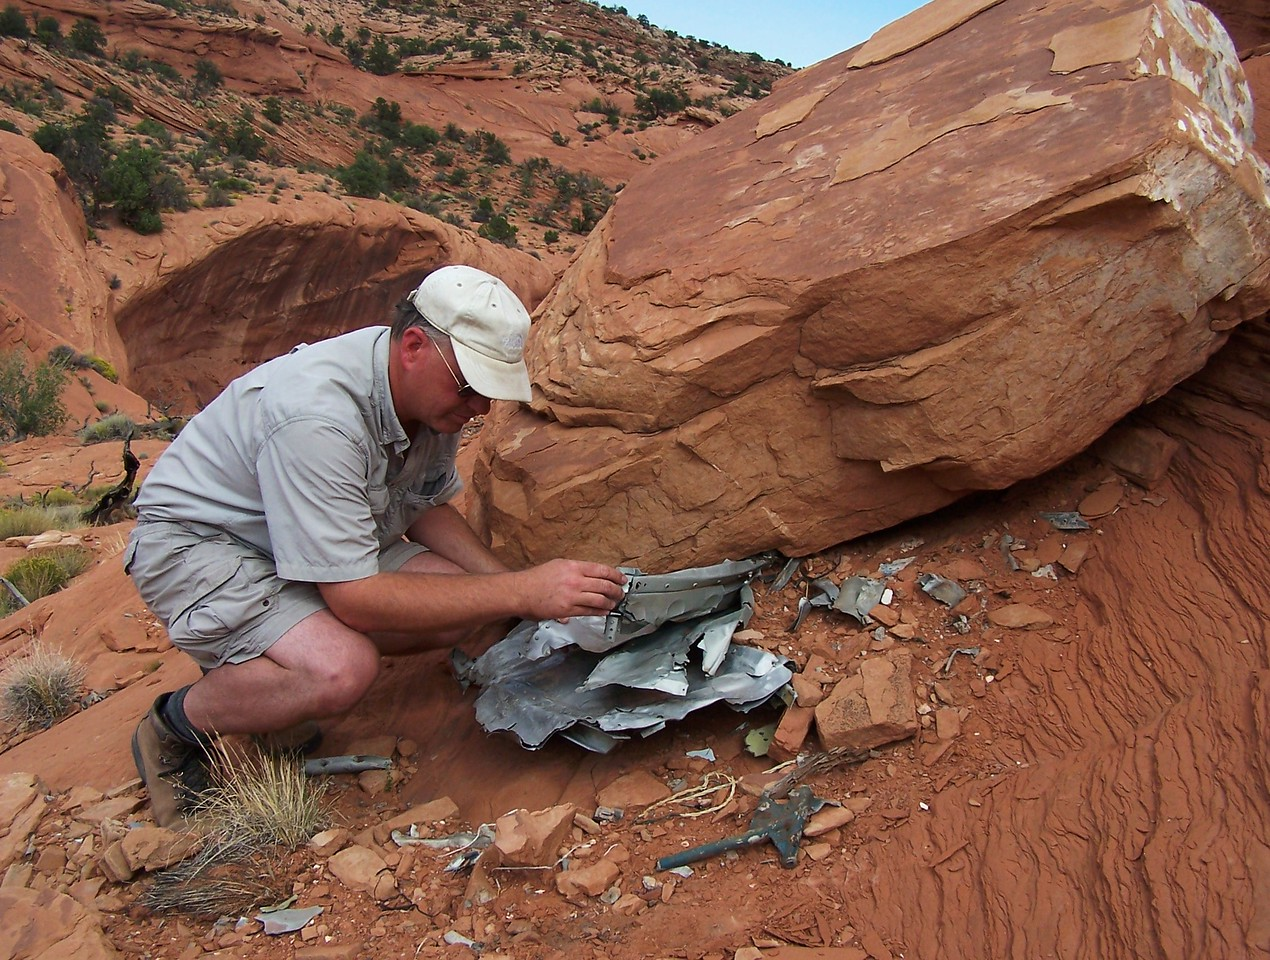 This wreckage was wedged under a large sandstone boulder. The boulder probably rolled down onto the wreckage after impact.